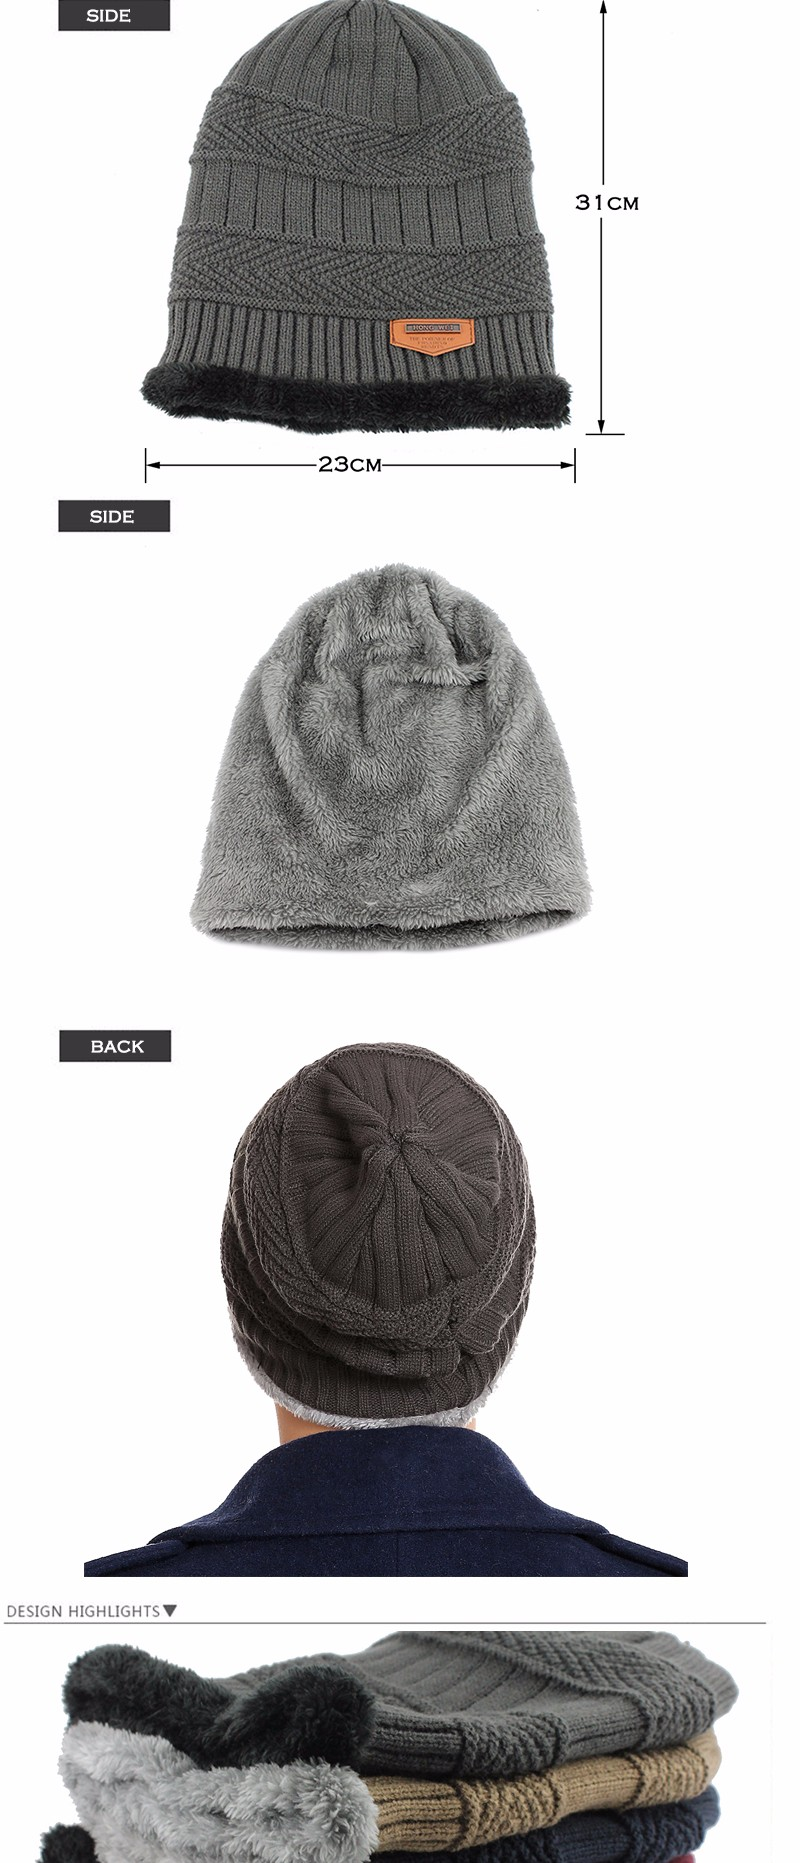 FETSBUY Pure Color Winter Skullies Beanies Hat Knit Winter Hat For Man Warm Hat Velvet Cap Bonnet Toucas Inverno Knitted Hats 28